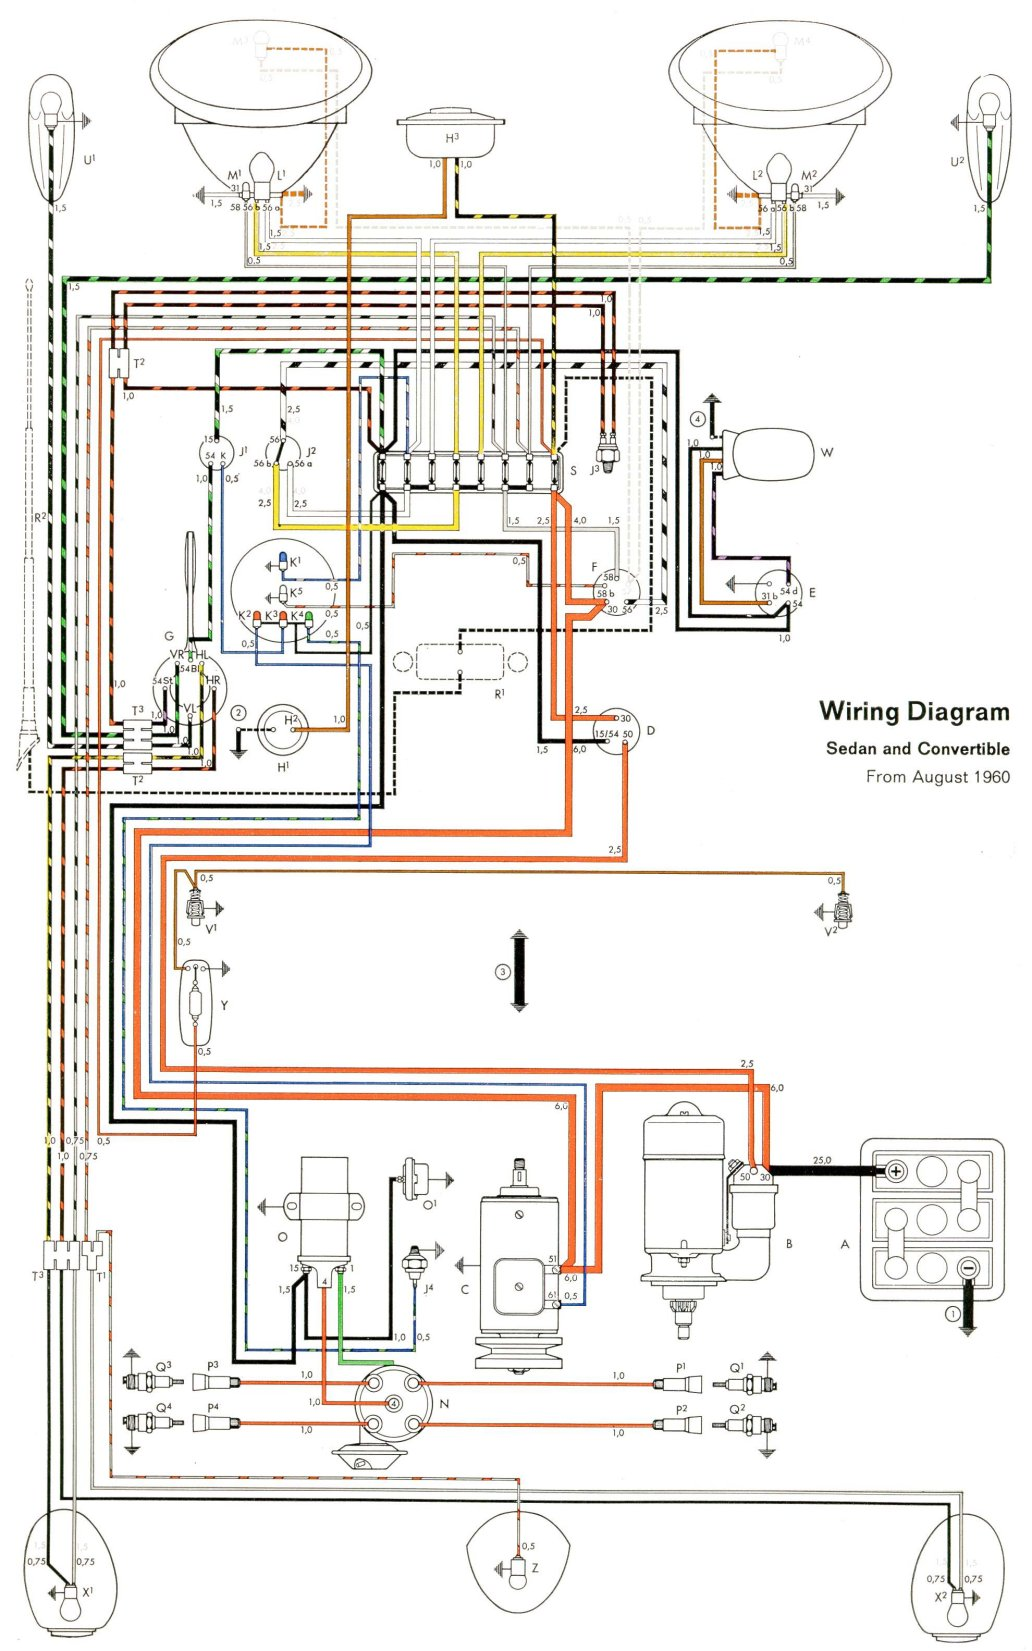 thesamba com type 1 wiring diagrams rh thesamba com 1960 vw bus wiring diagram VW Beetle Generator Wiring Diagram